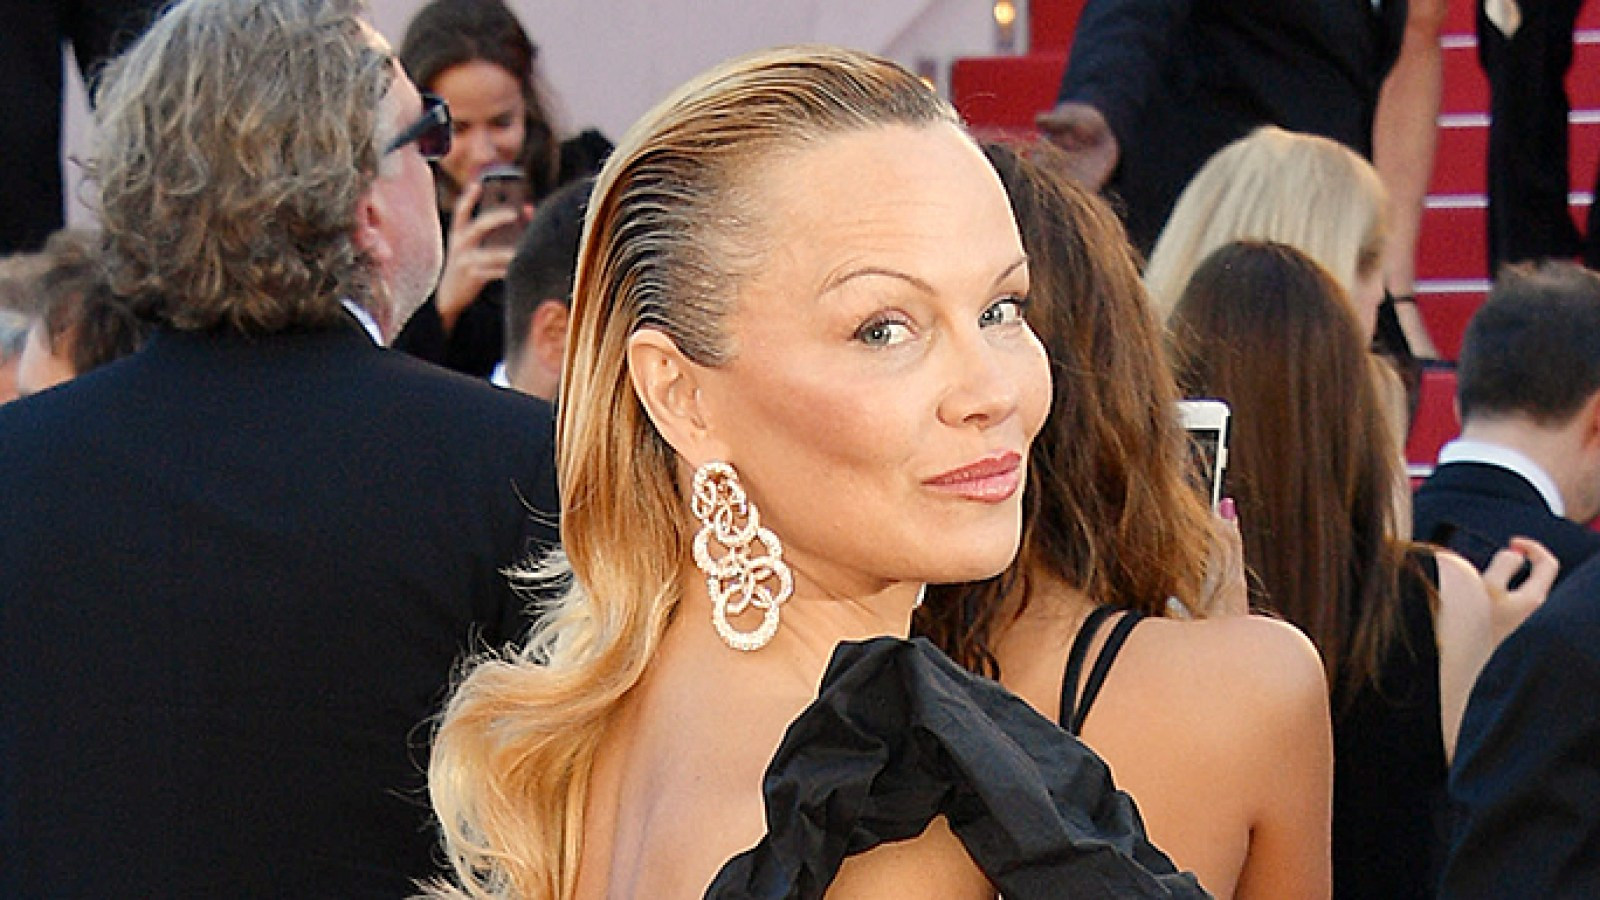 pamela anderson looks unrecognizable at cannes film festival: photos